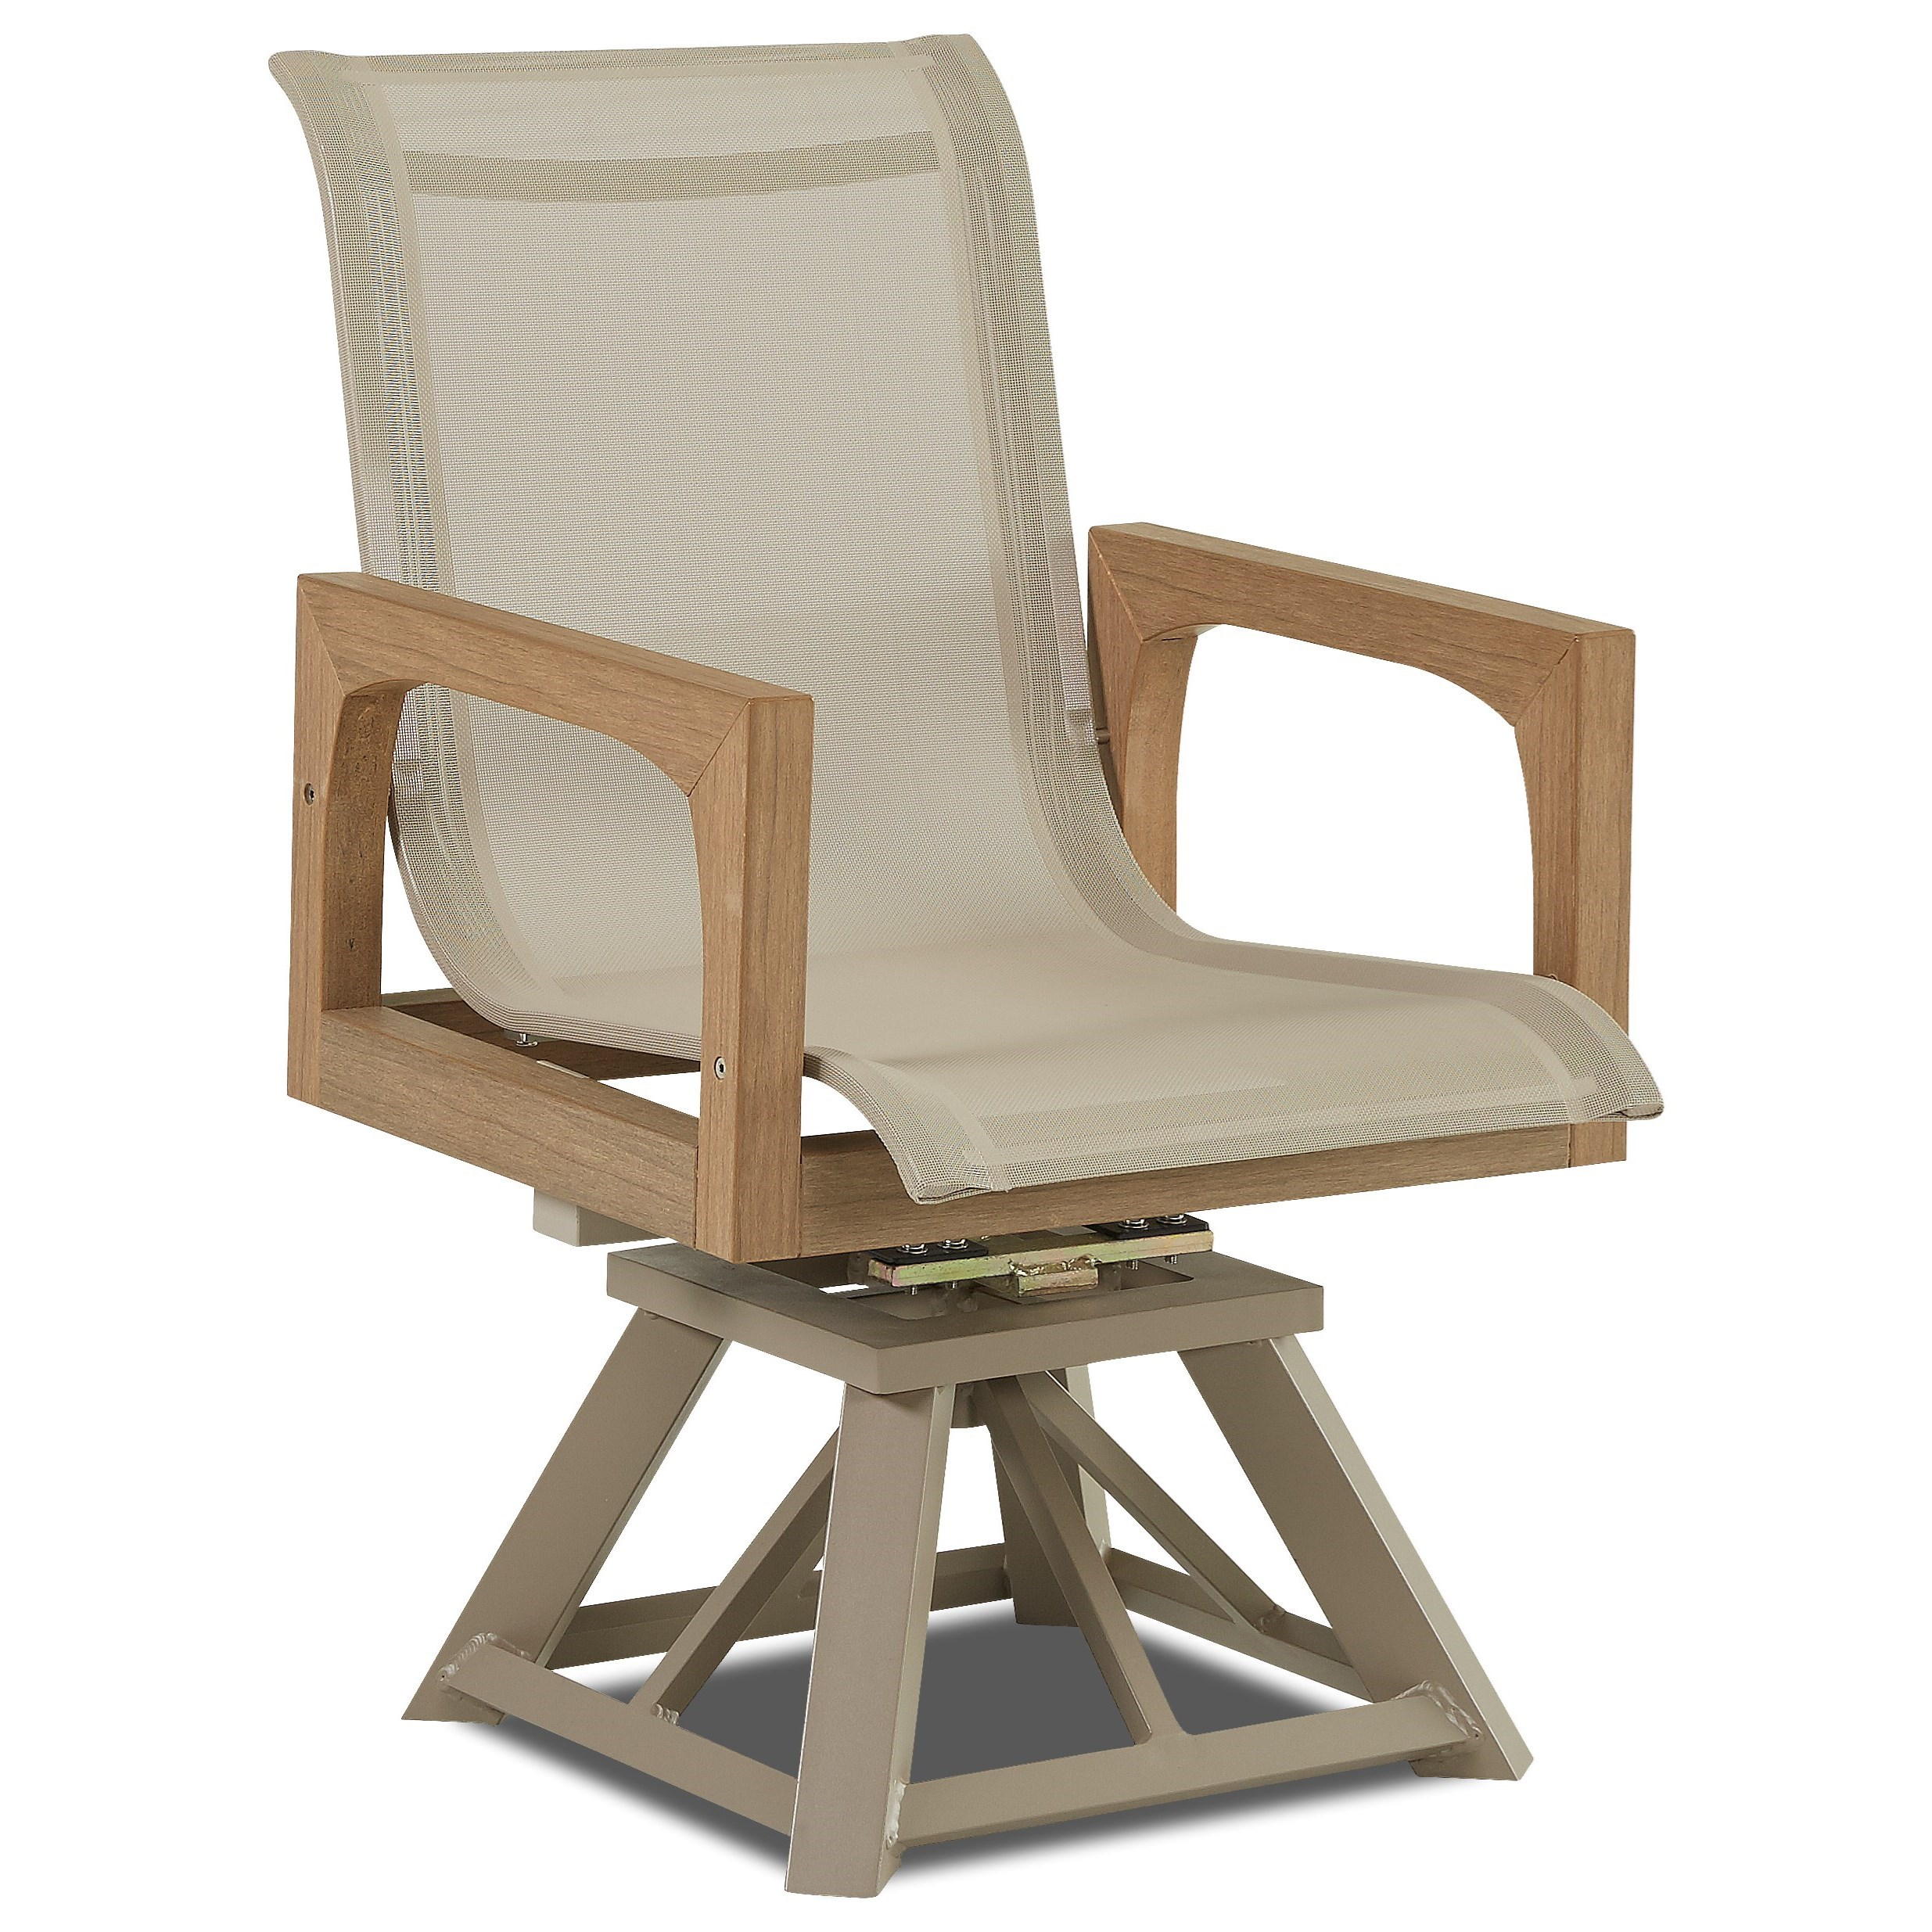 Delray Swivel Rocker Dining Chair by Klaussner Outdoor at Nassau Furniture and Mattress